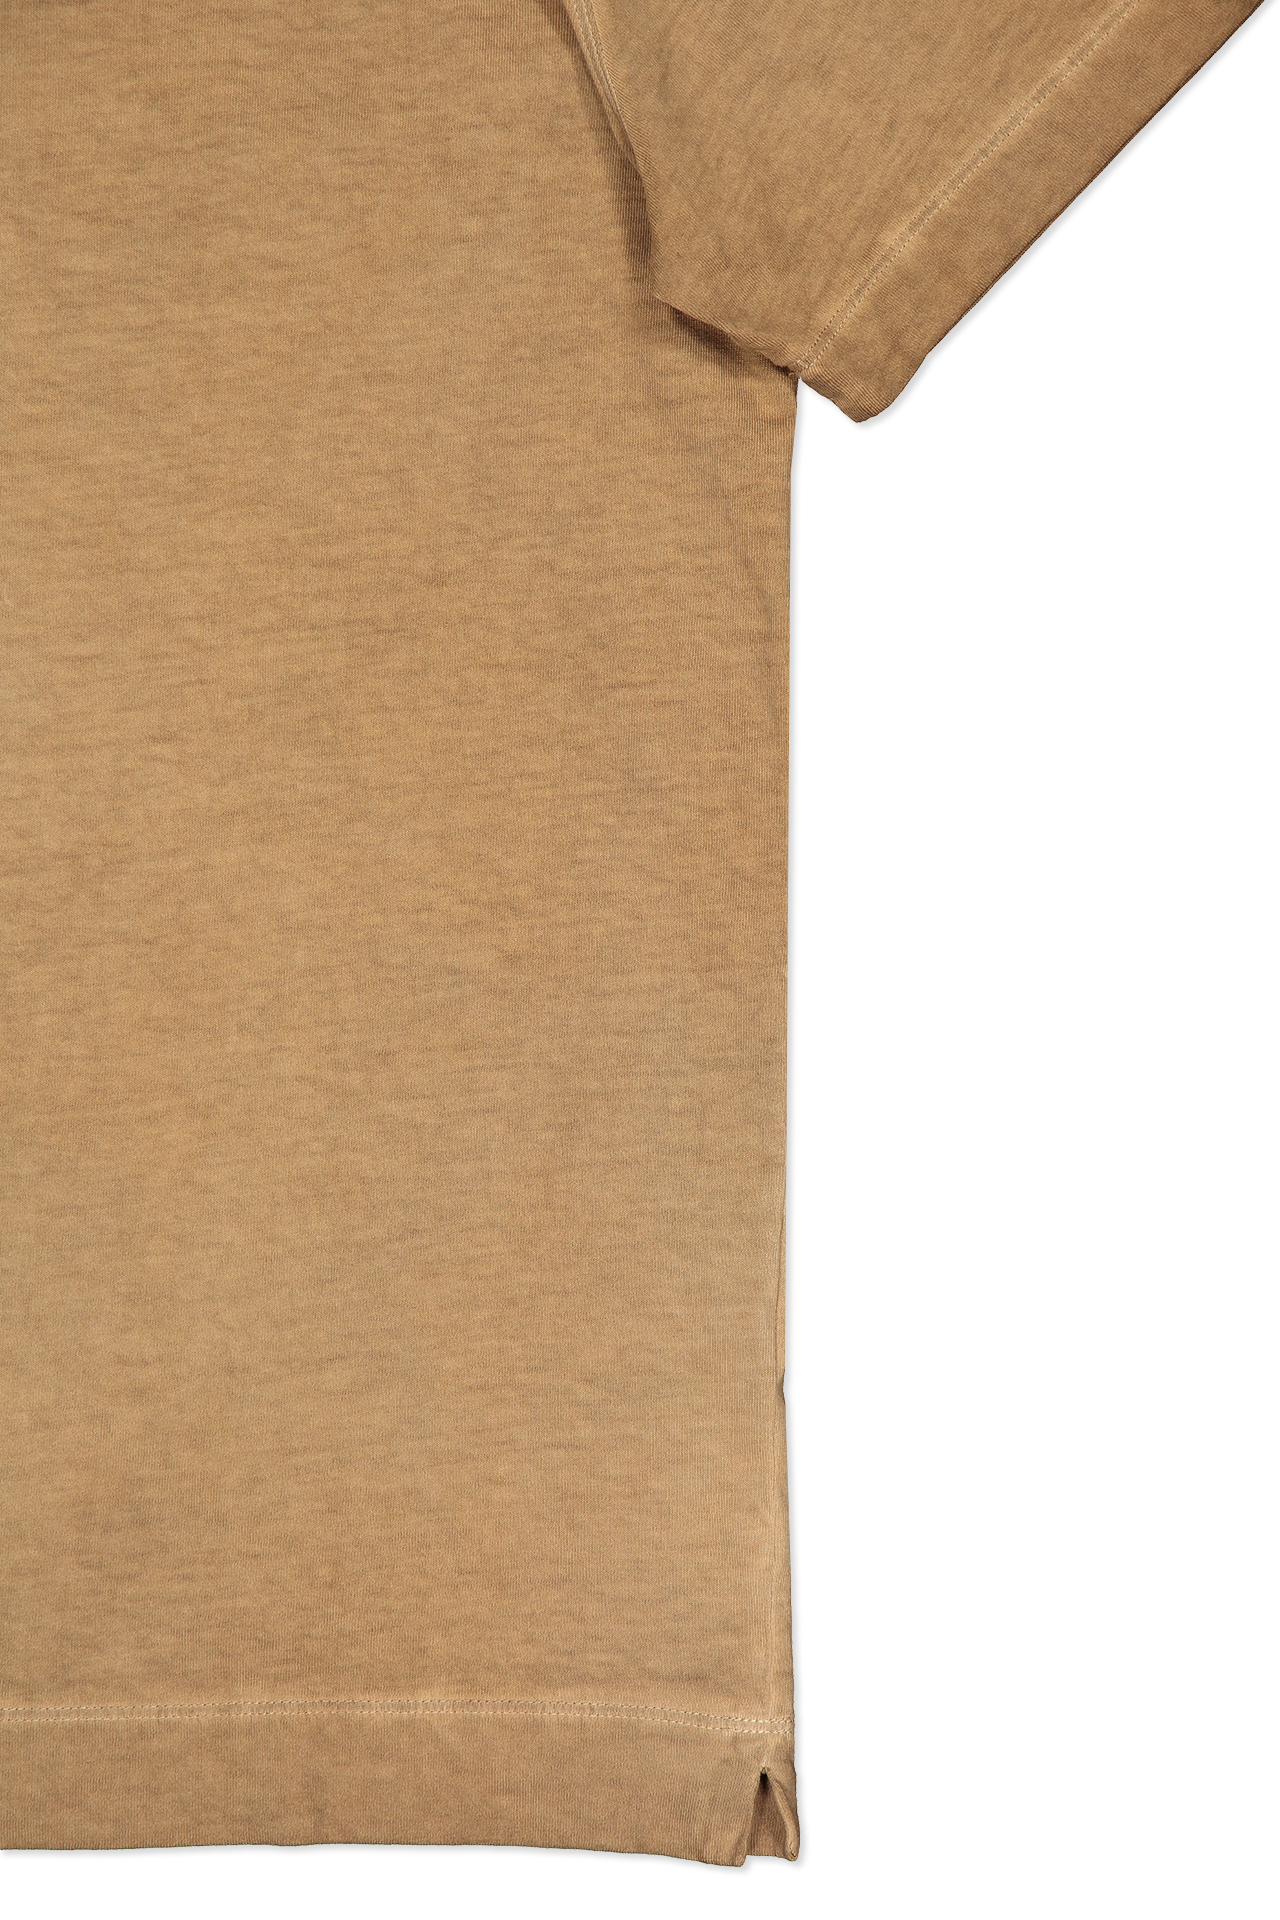 Hemline and sleeve detail image of Boglioli Cotton T-Shirt Brown